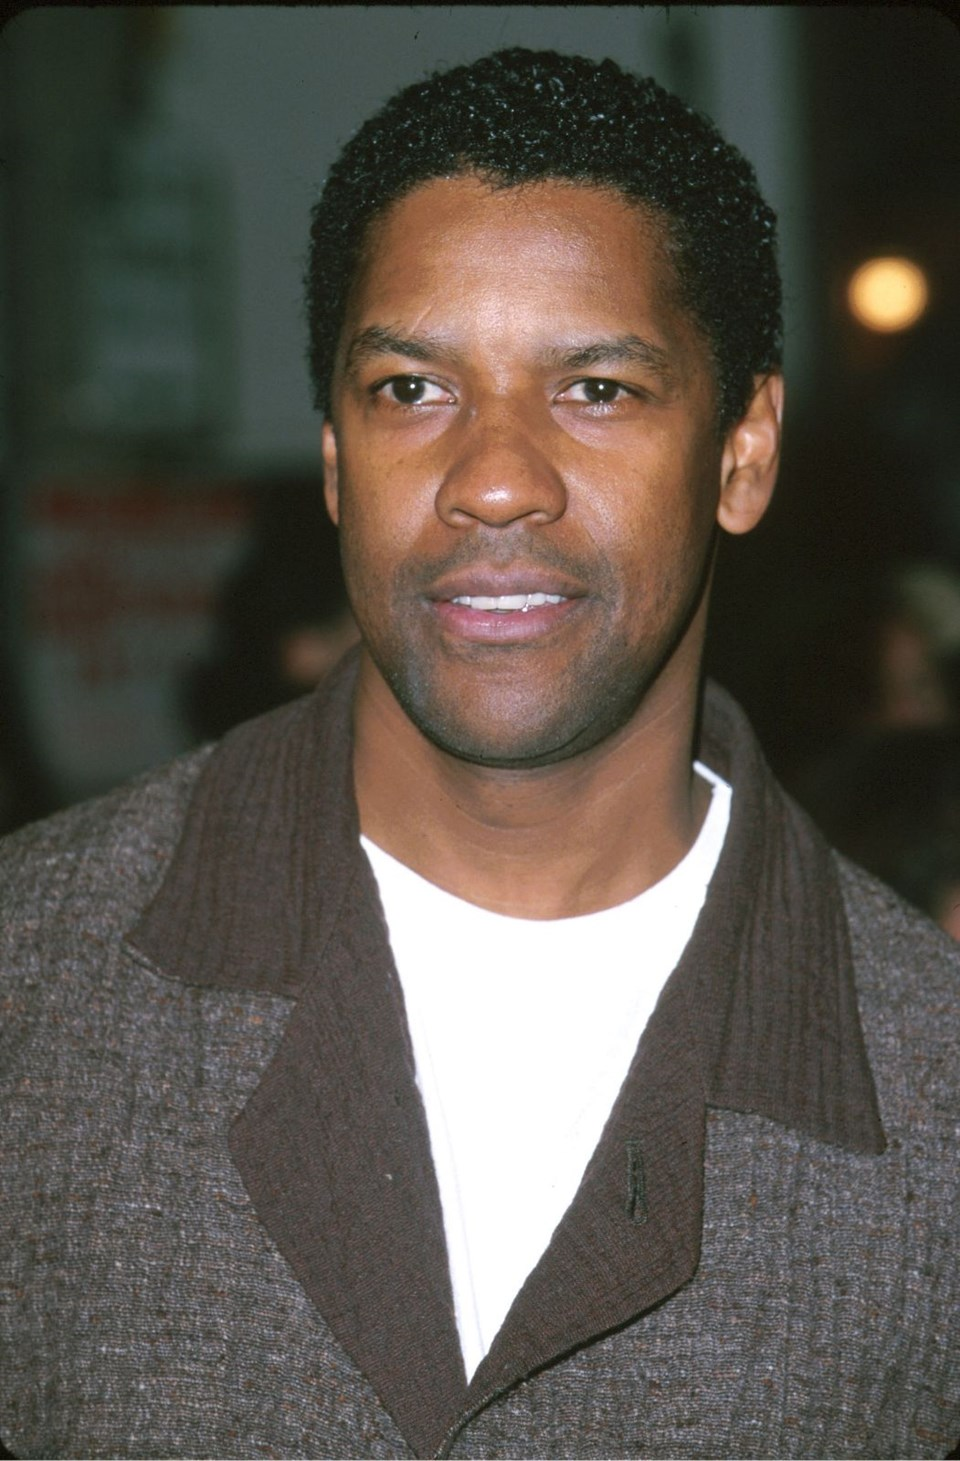 1996: DENZEL WASHINGTON